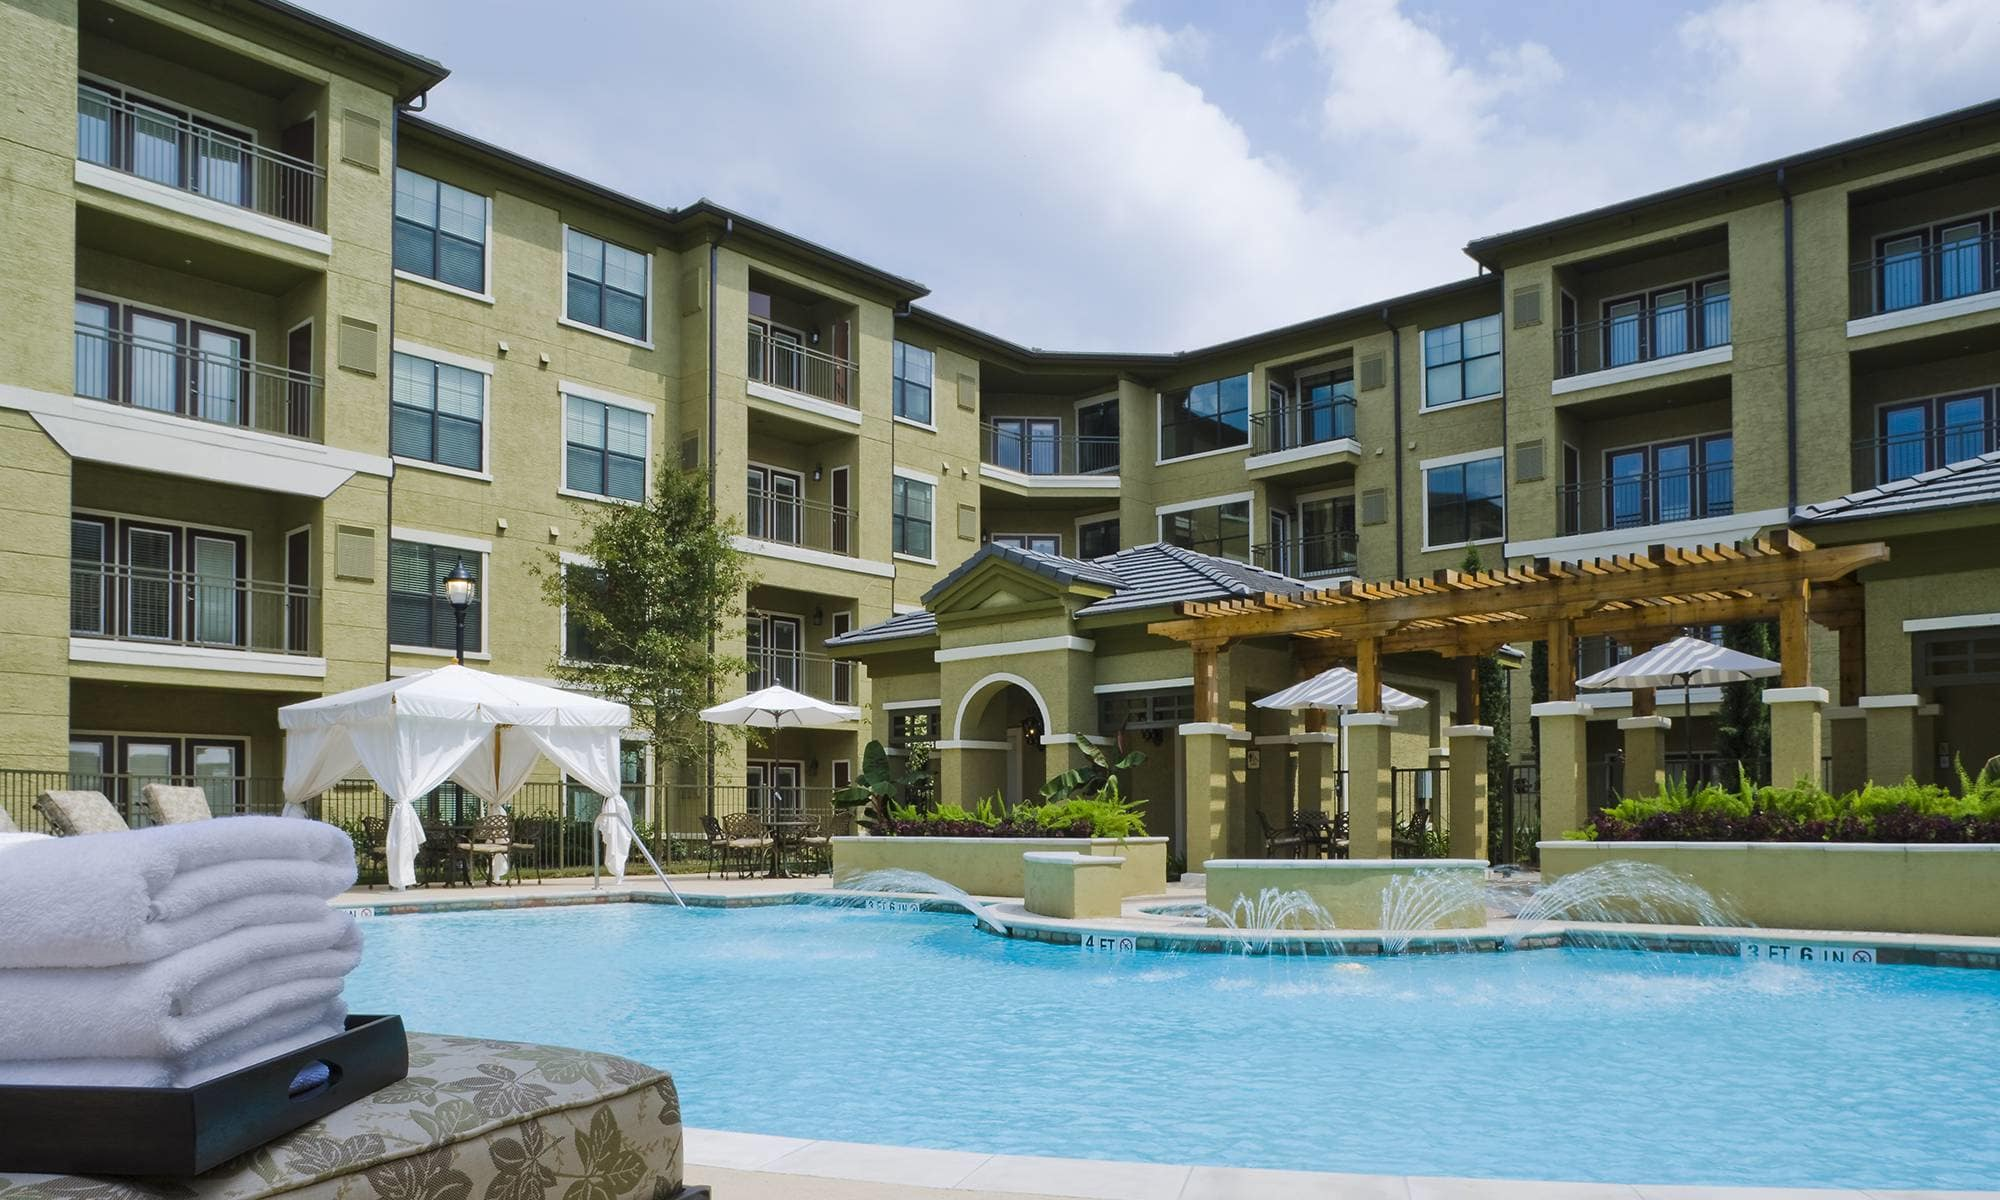 Exterior View From The Pool Area Of Our Wonderful Senior Living Community  In Spring.